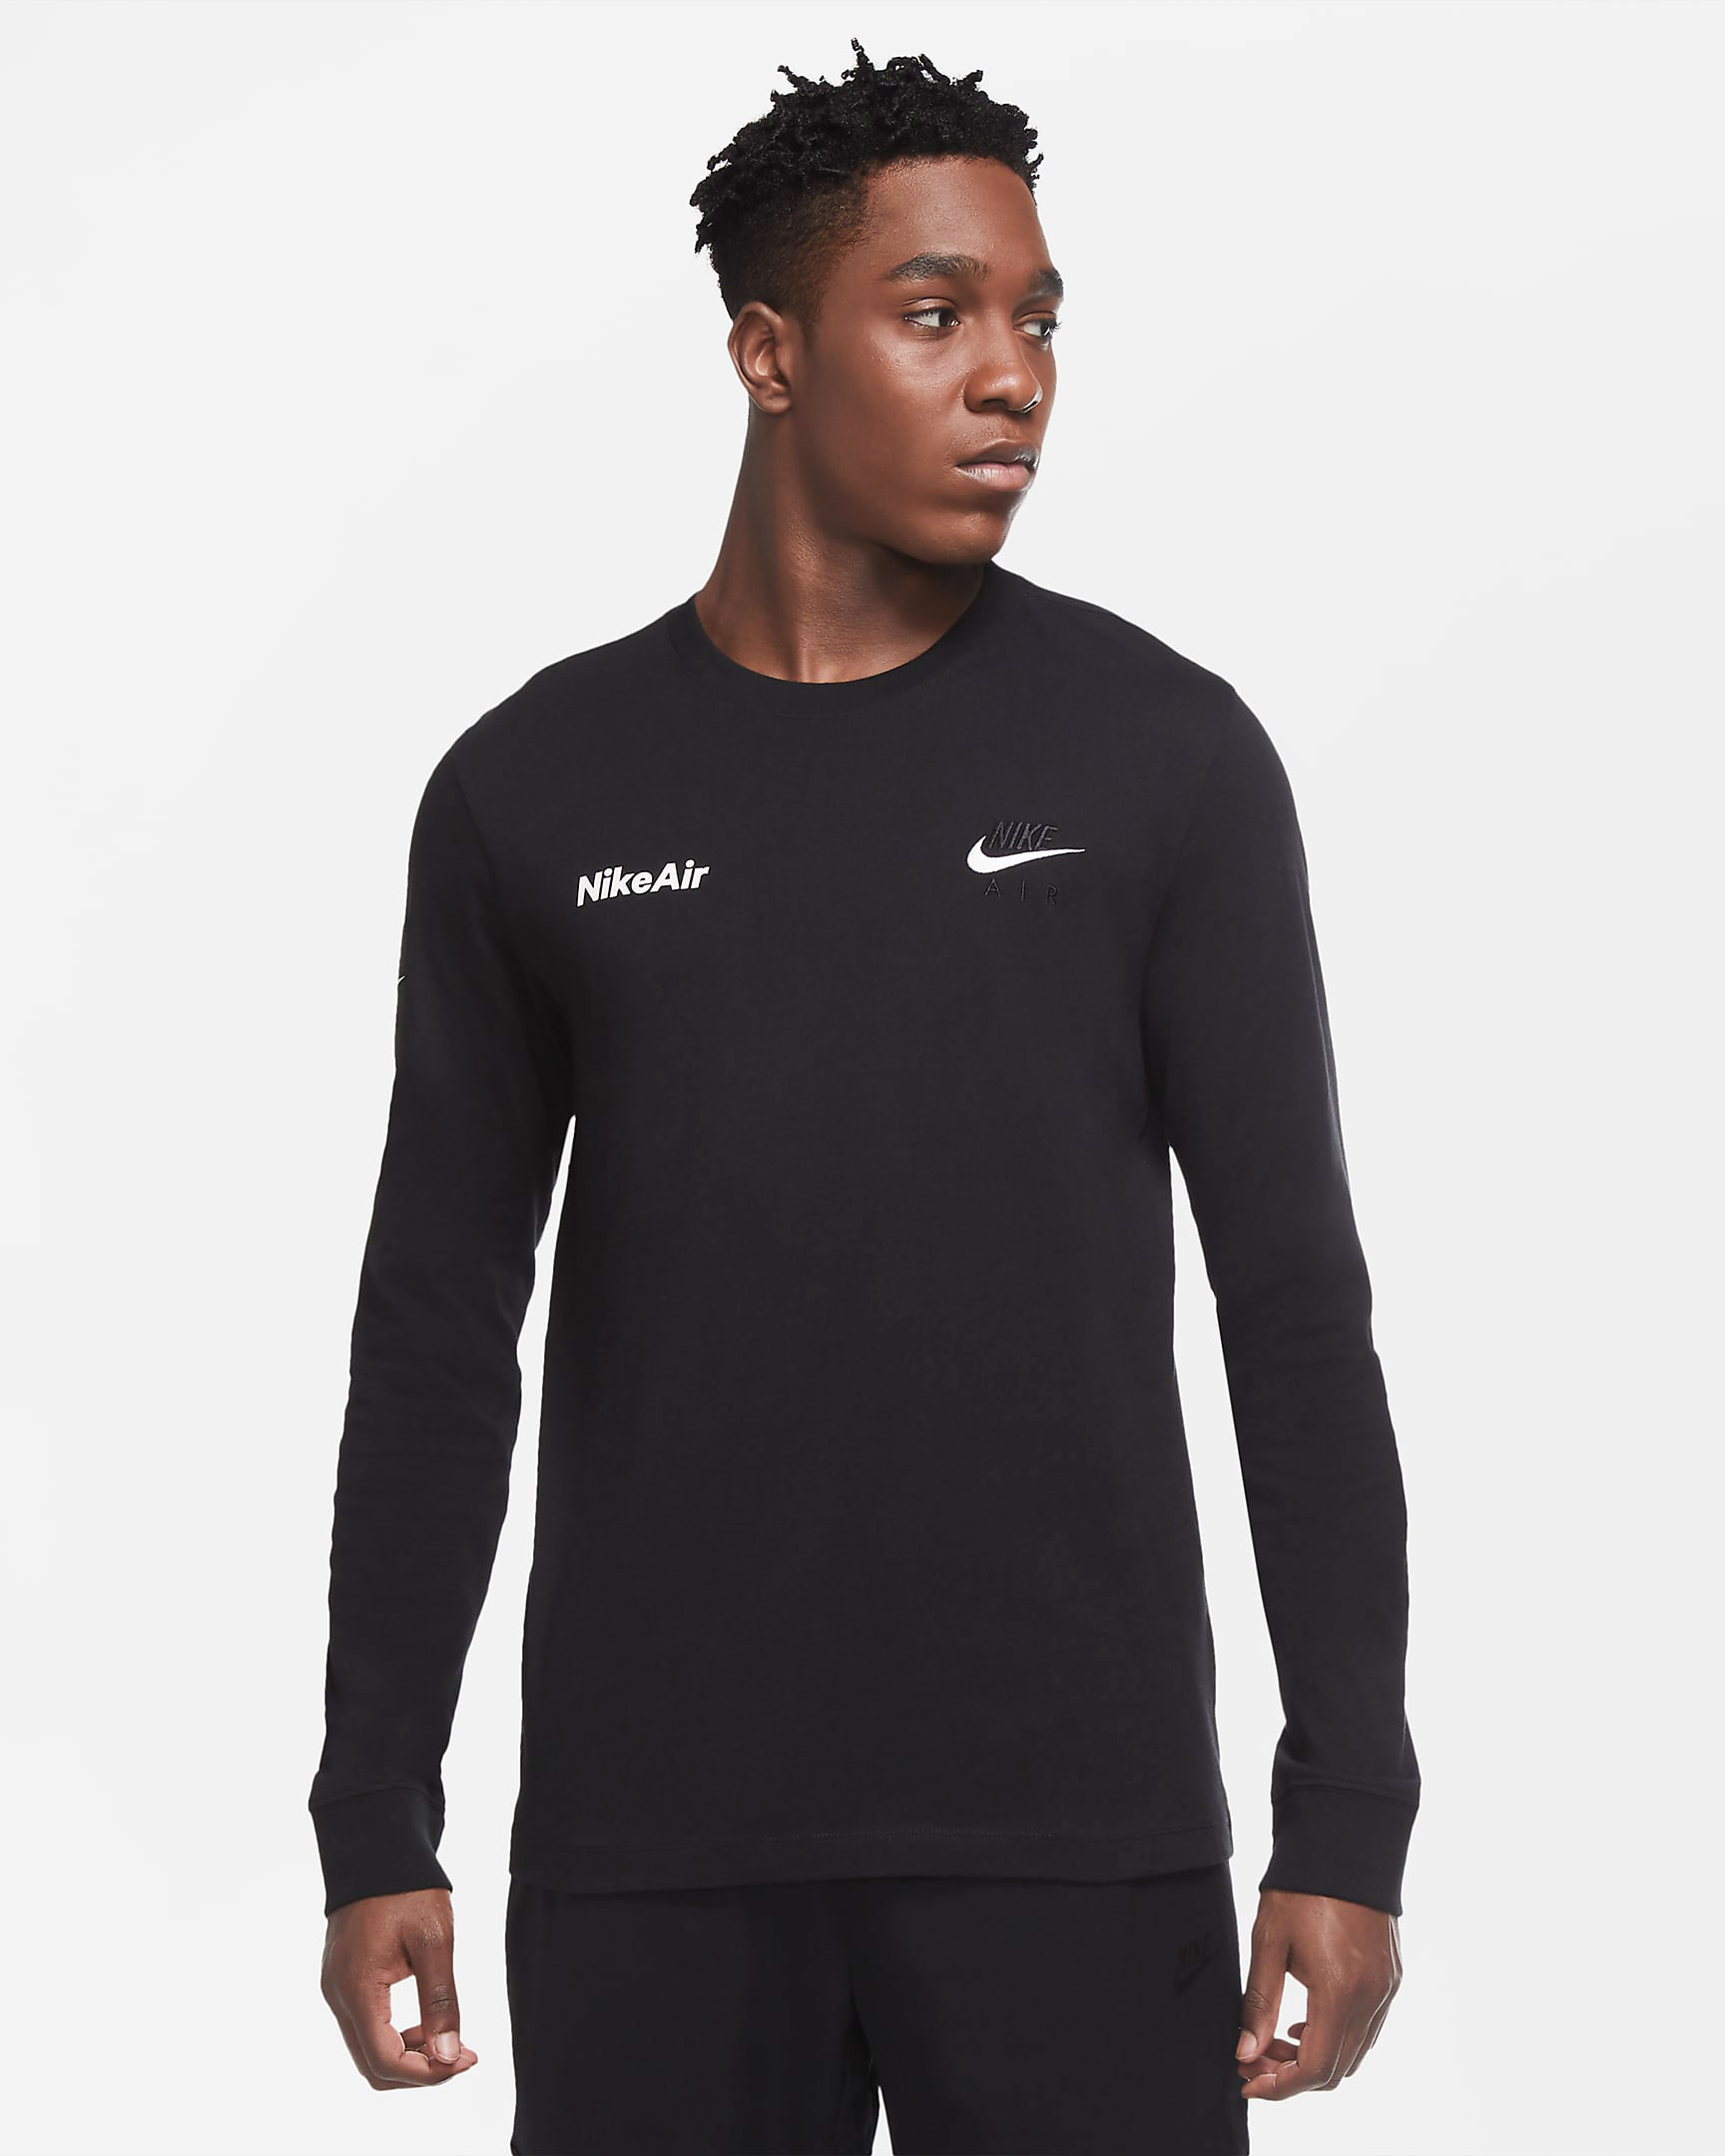 nike-foamposite-one-anthracite-blackout-long-sleeve-shirt-match-1